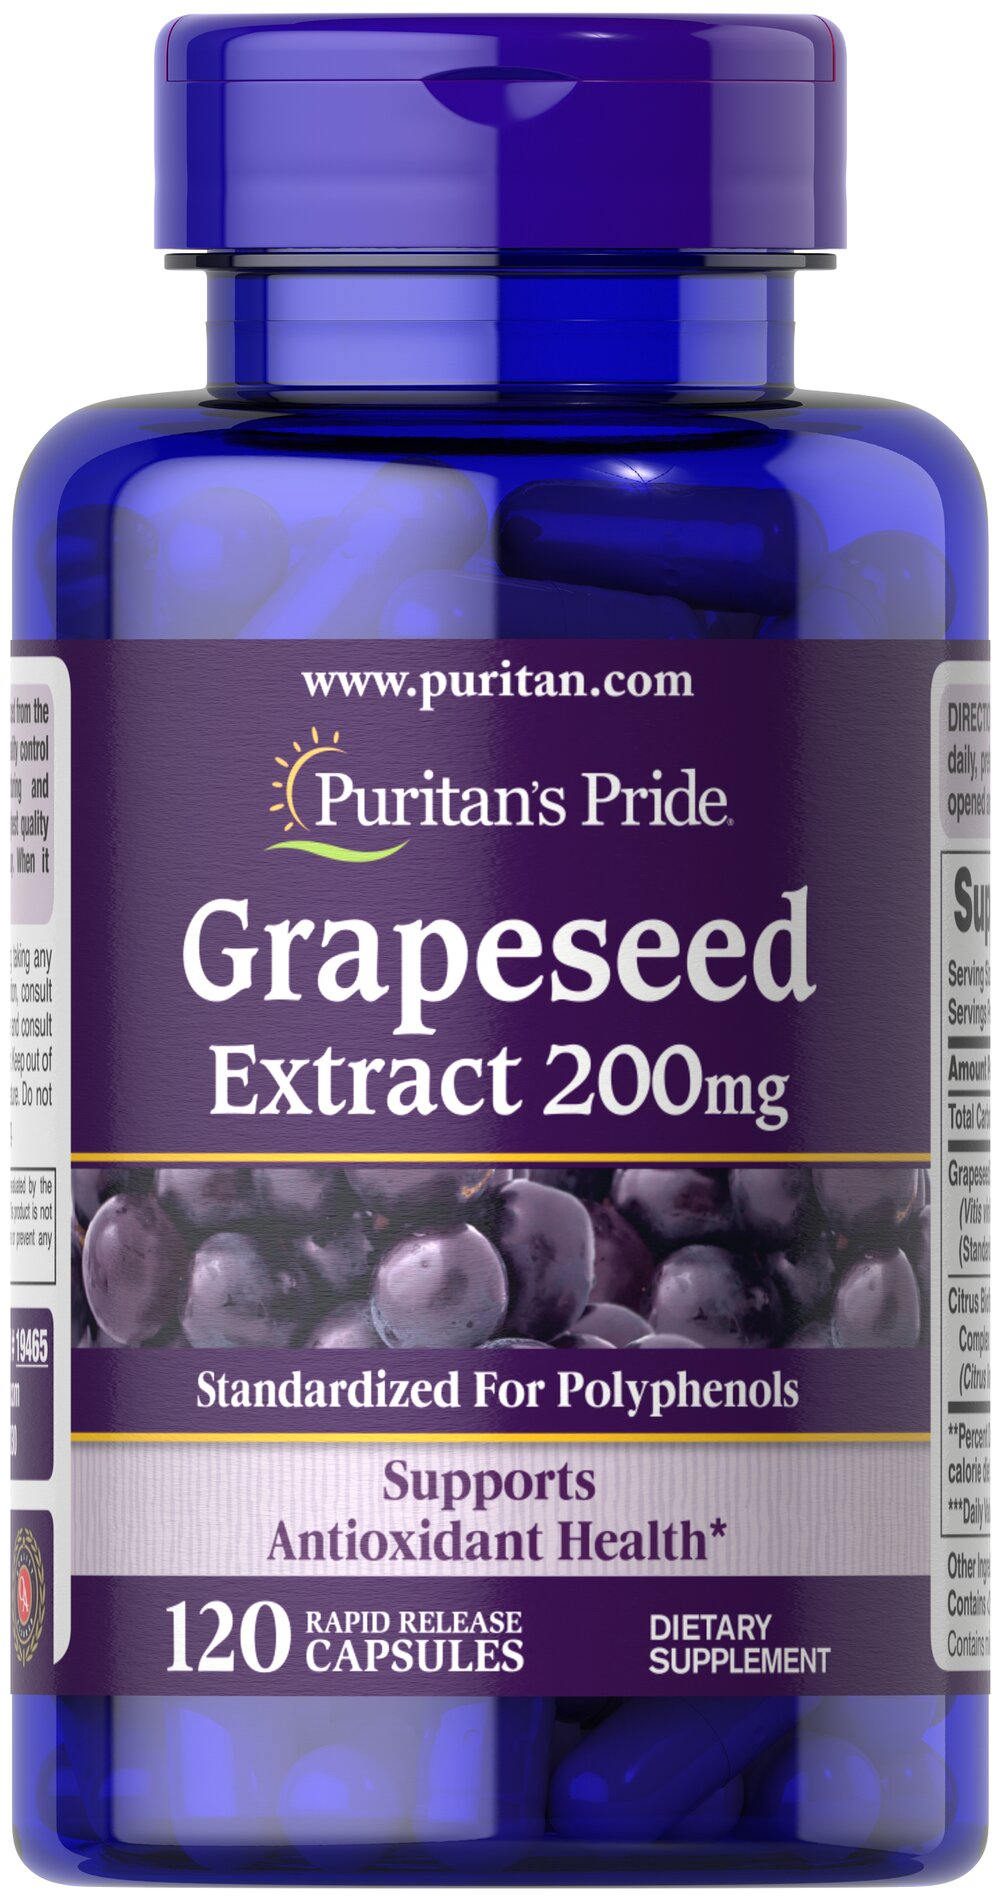 Grapeseed Extract 200 mg <p><strong>Grapeseed Extract</strong> helps maintain antioxidant health.** It contains oligomeric proanthocyanidins (OPCs), which are naturally occurring bioflavonoids. Free of yeast, wheat, sugar, preservatives, soy,  gluten, fish, artificial color, artificial flavor and sodium (less than 5 mg per serving). Standardized to contain 50% Polyphenols. Adults can take one capsule one or two times daily.</p> 120 Capsules 200 mg $37.99